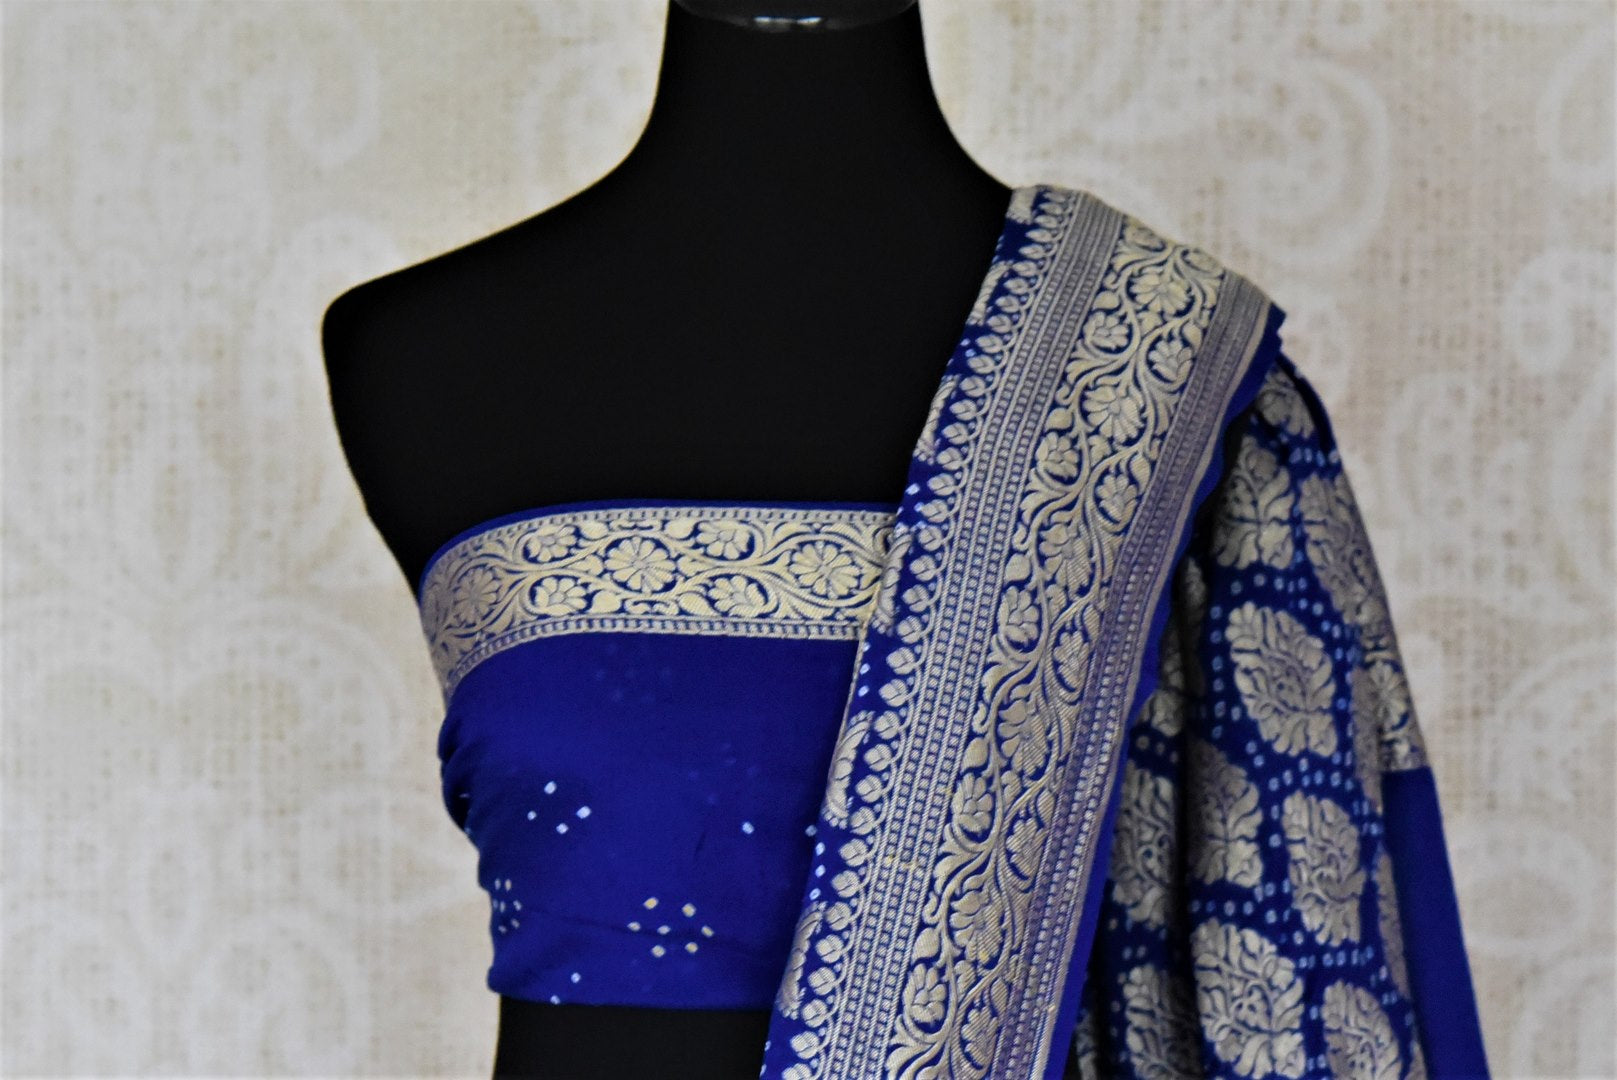 Buy stunning ombre blue bandhej georgette Banarasi sari online in USA. Spread your ethnic charm on special occasions with traditional Banarasi sarees, bandhej sarees, georgette sarees from Pure Elegance Indian fashion store in USA.-blouse pallu